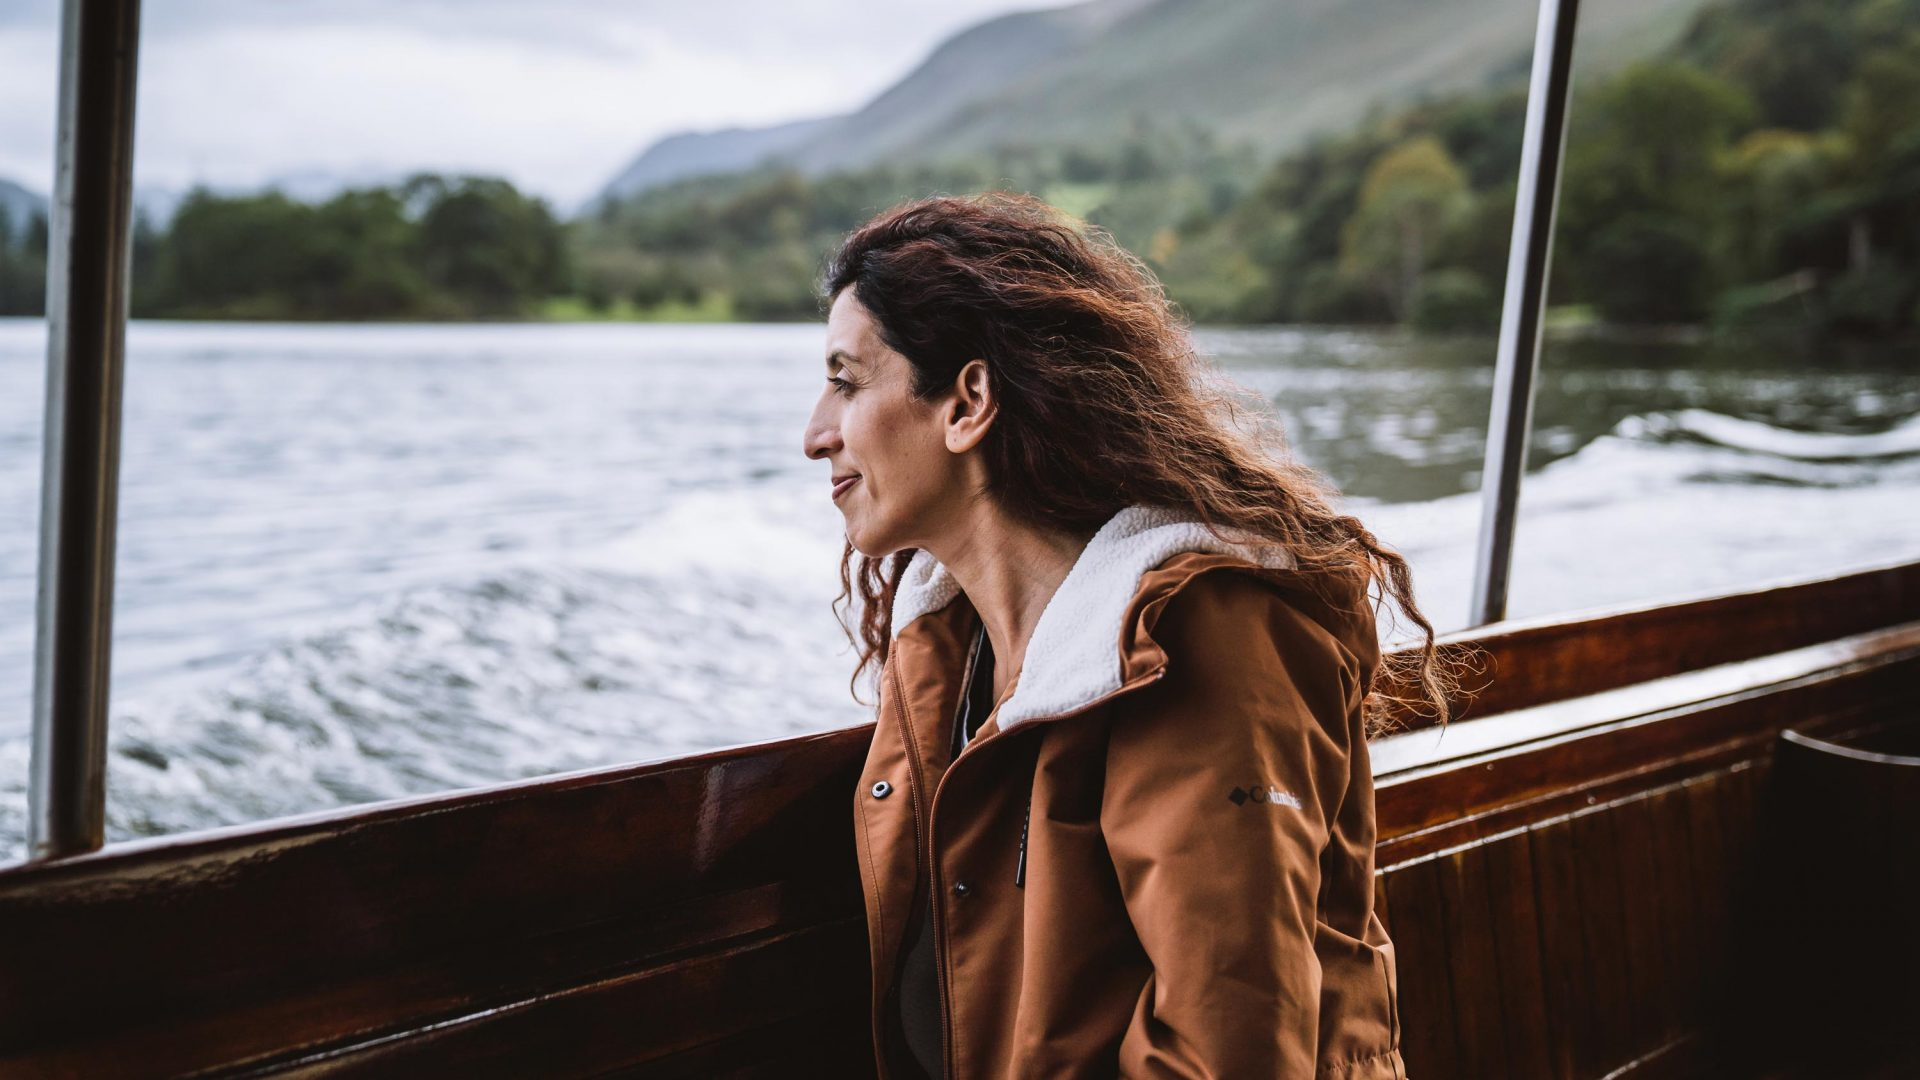 Zarina Ahmad, a member of Bonnie Boots Boots, enjoys the fresh air of the Lake District.